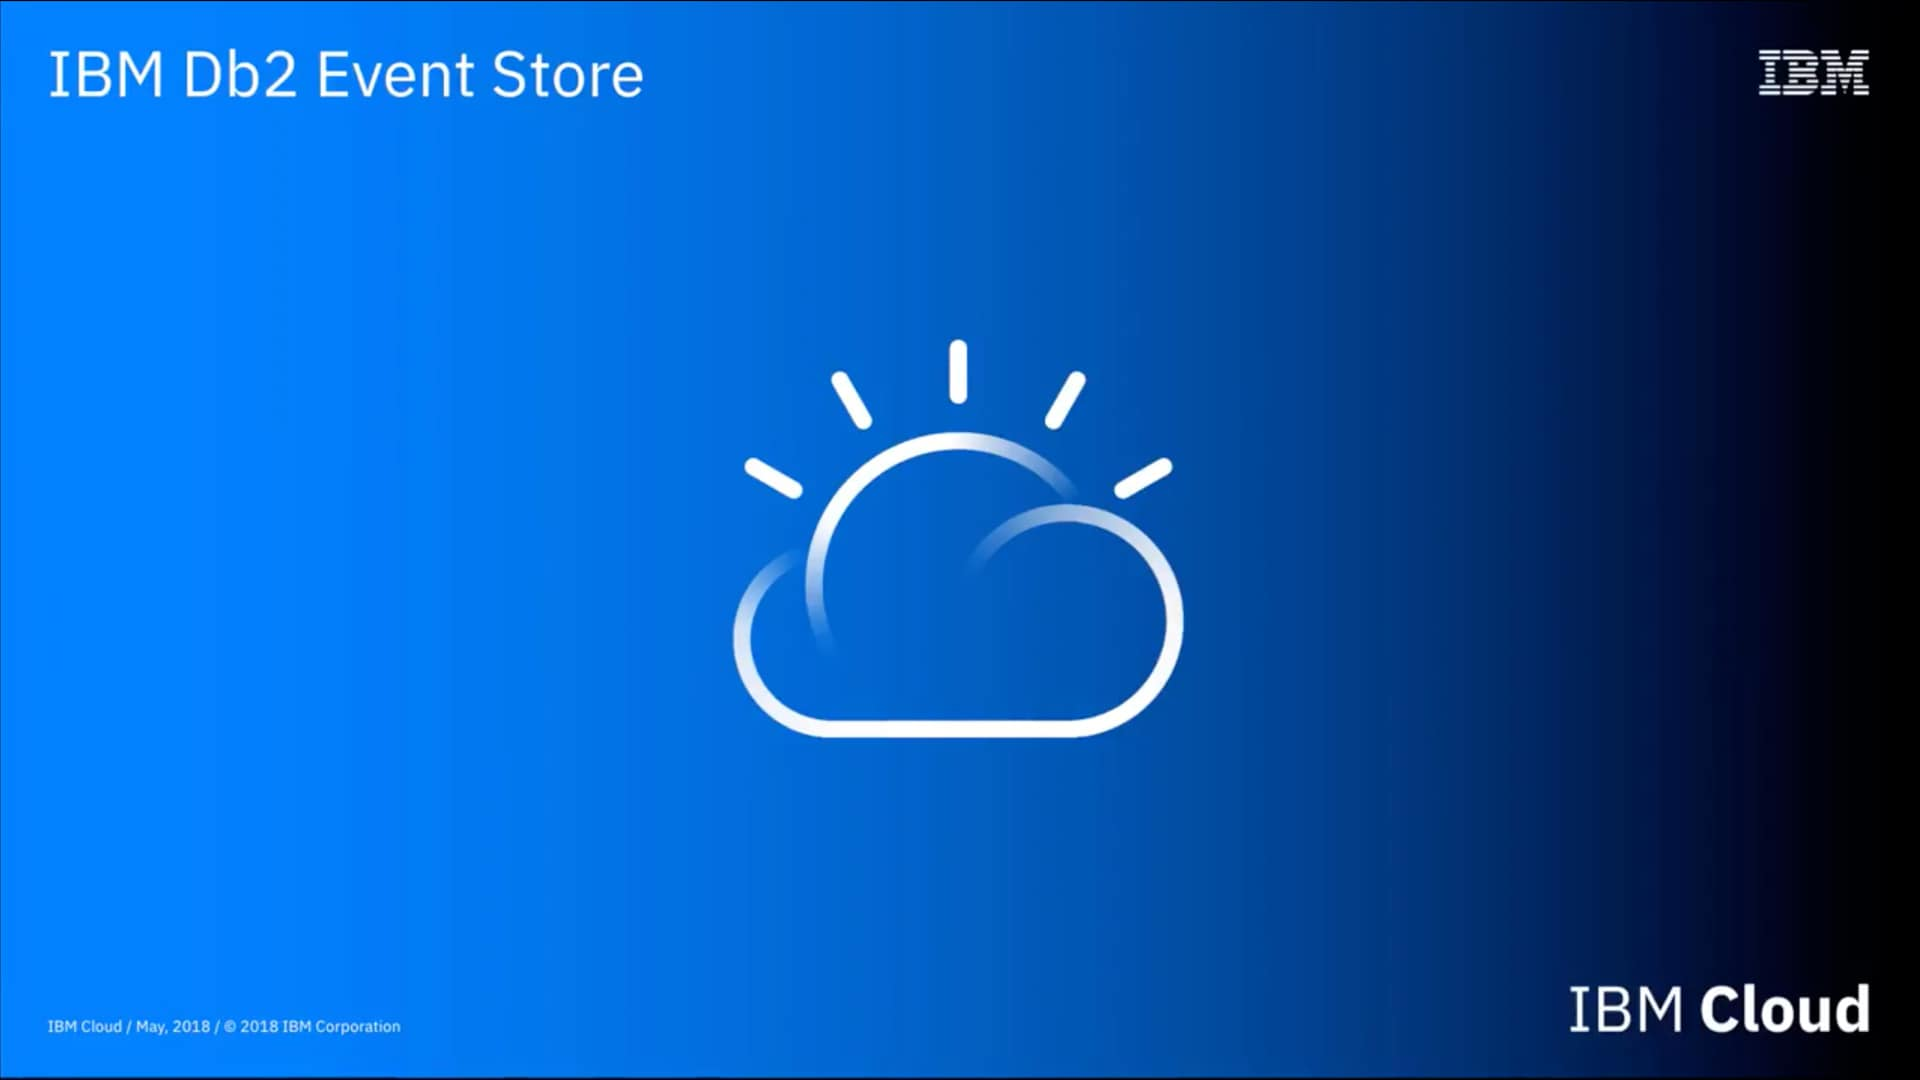 IBM Analytics 影片「IBM Db2 Event Store 簡介」中的靜態影像